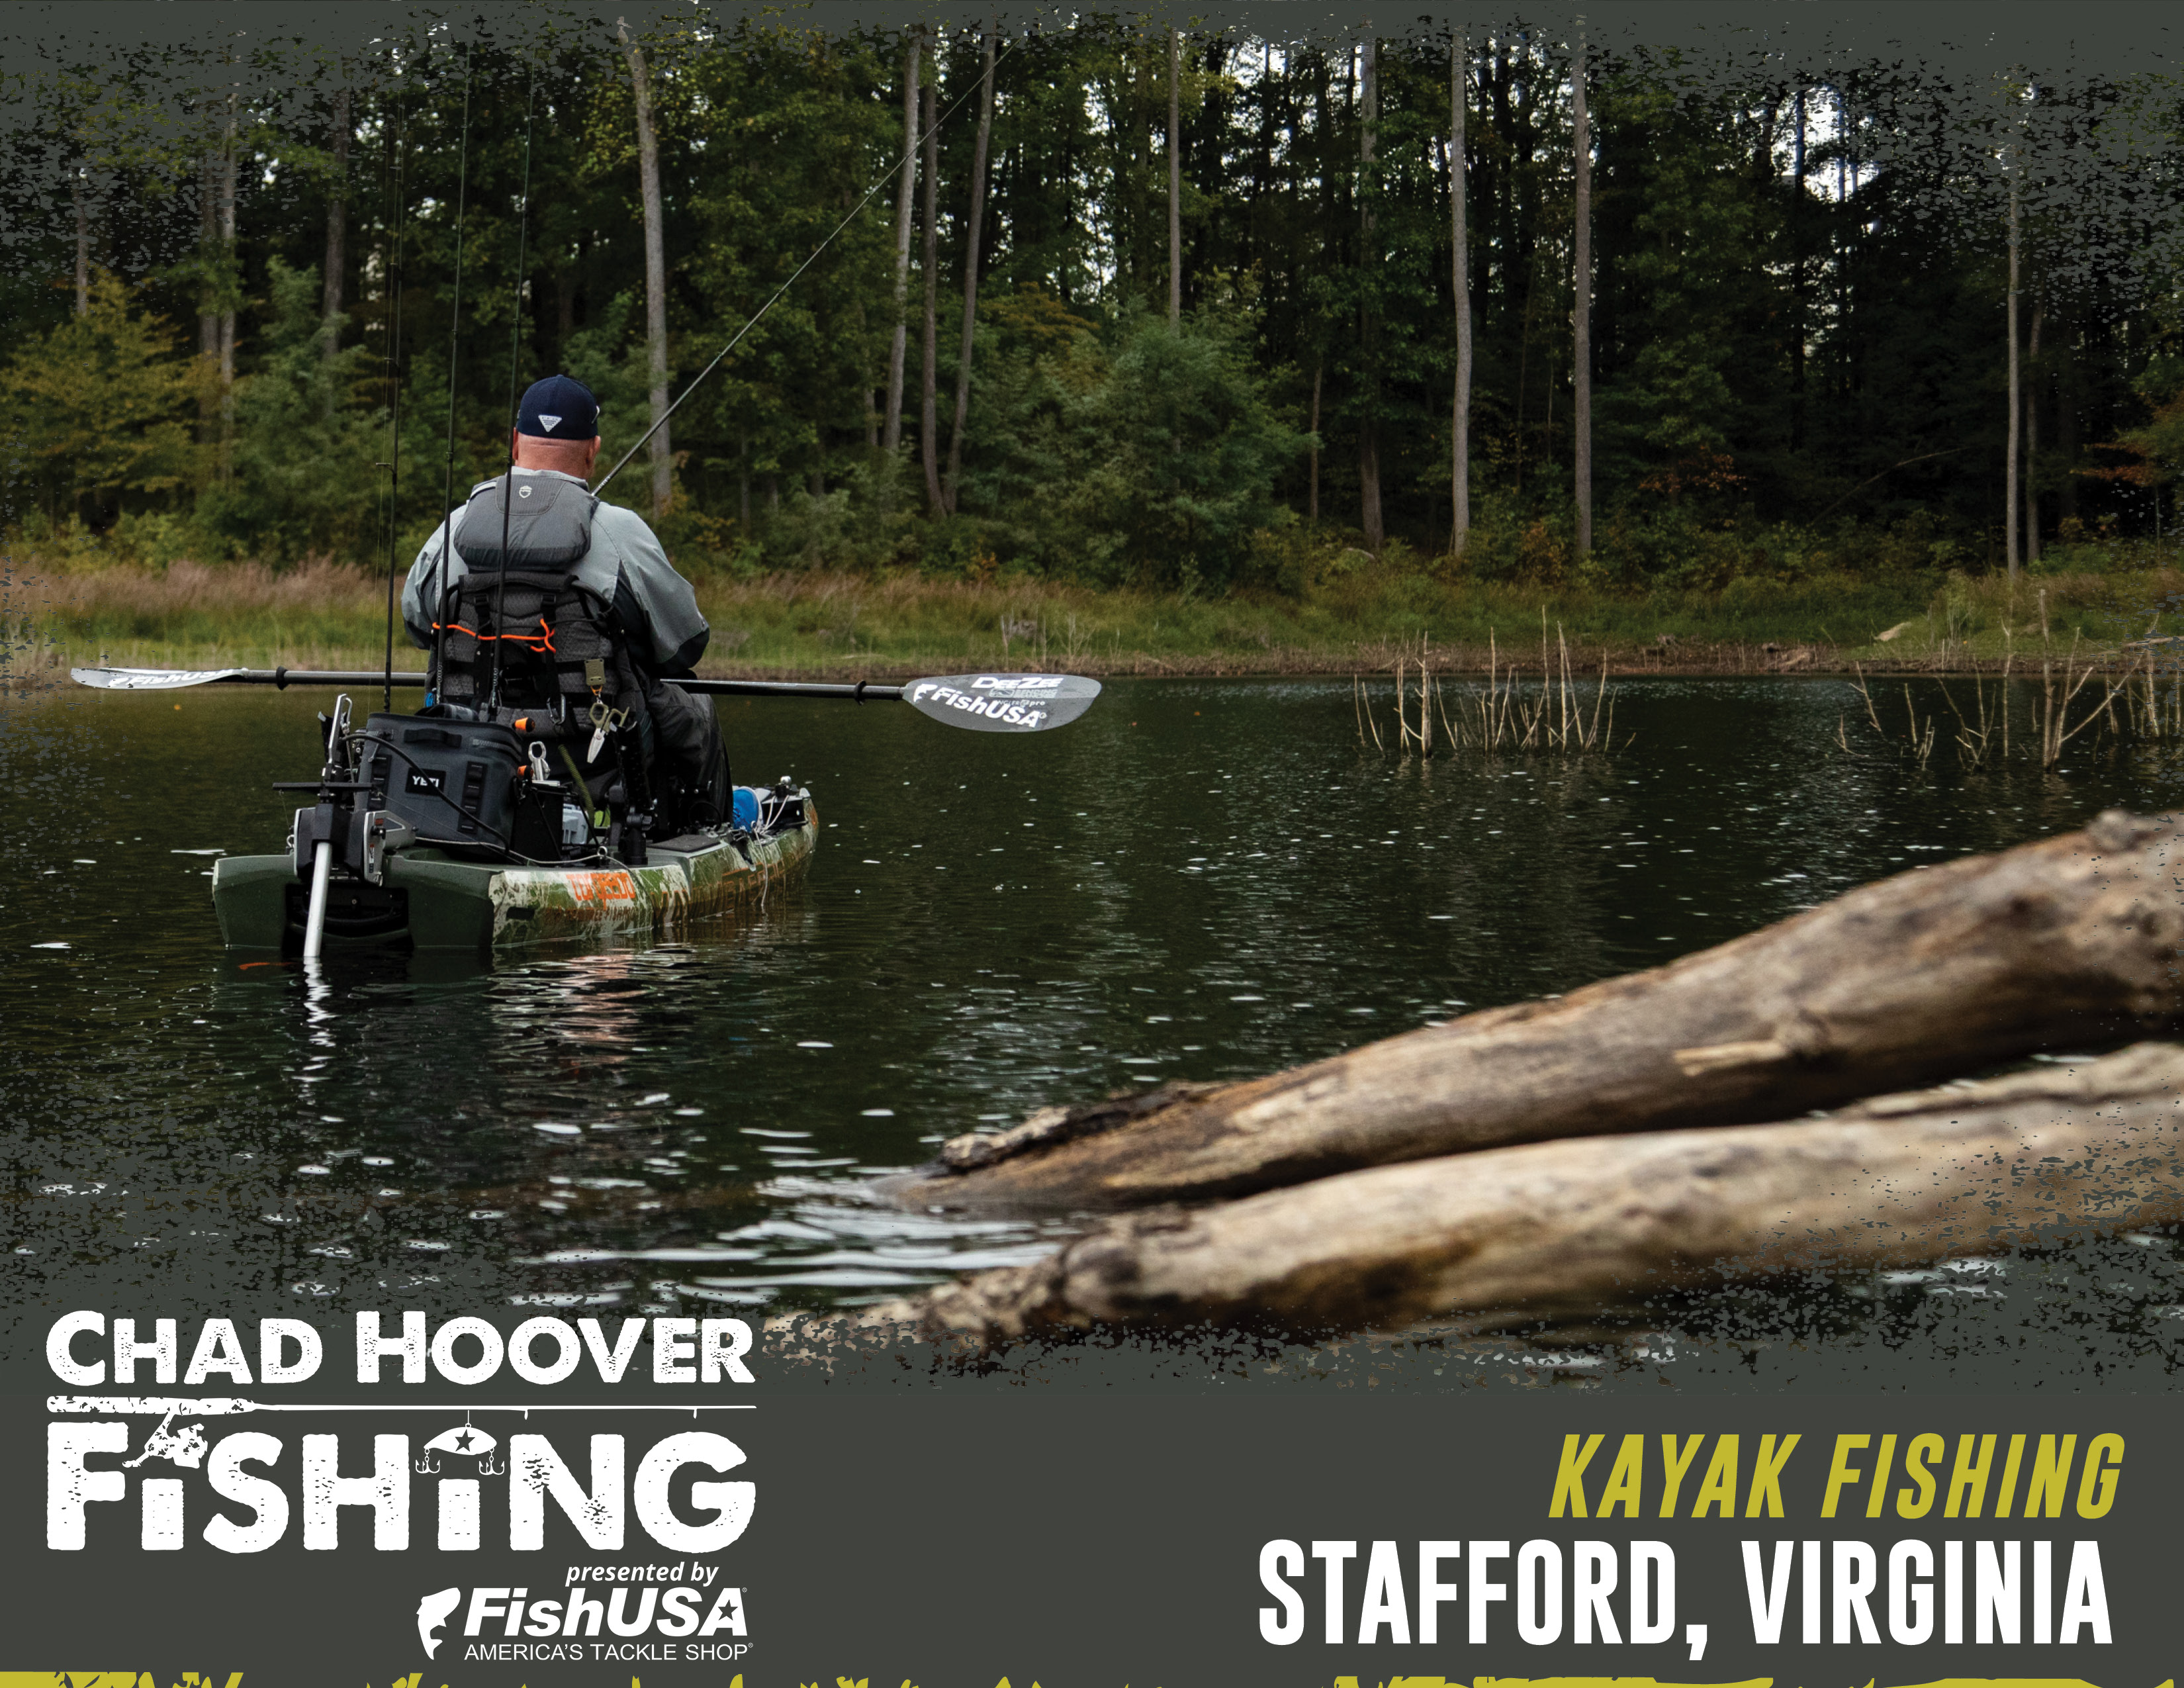 Episode 1 of chad hoover fishing in stafford Virginia